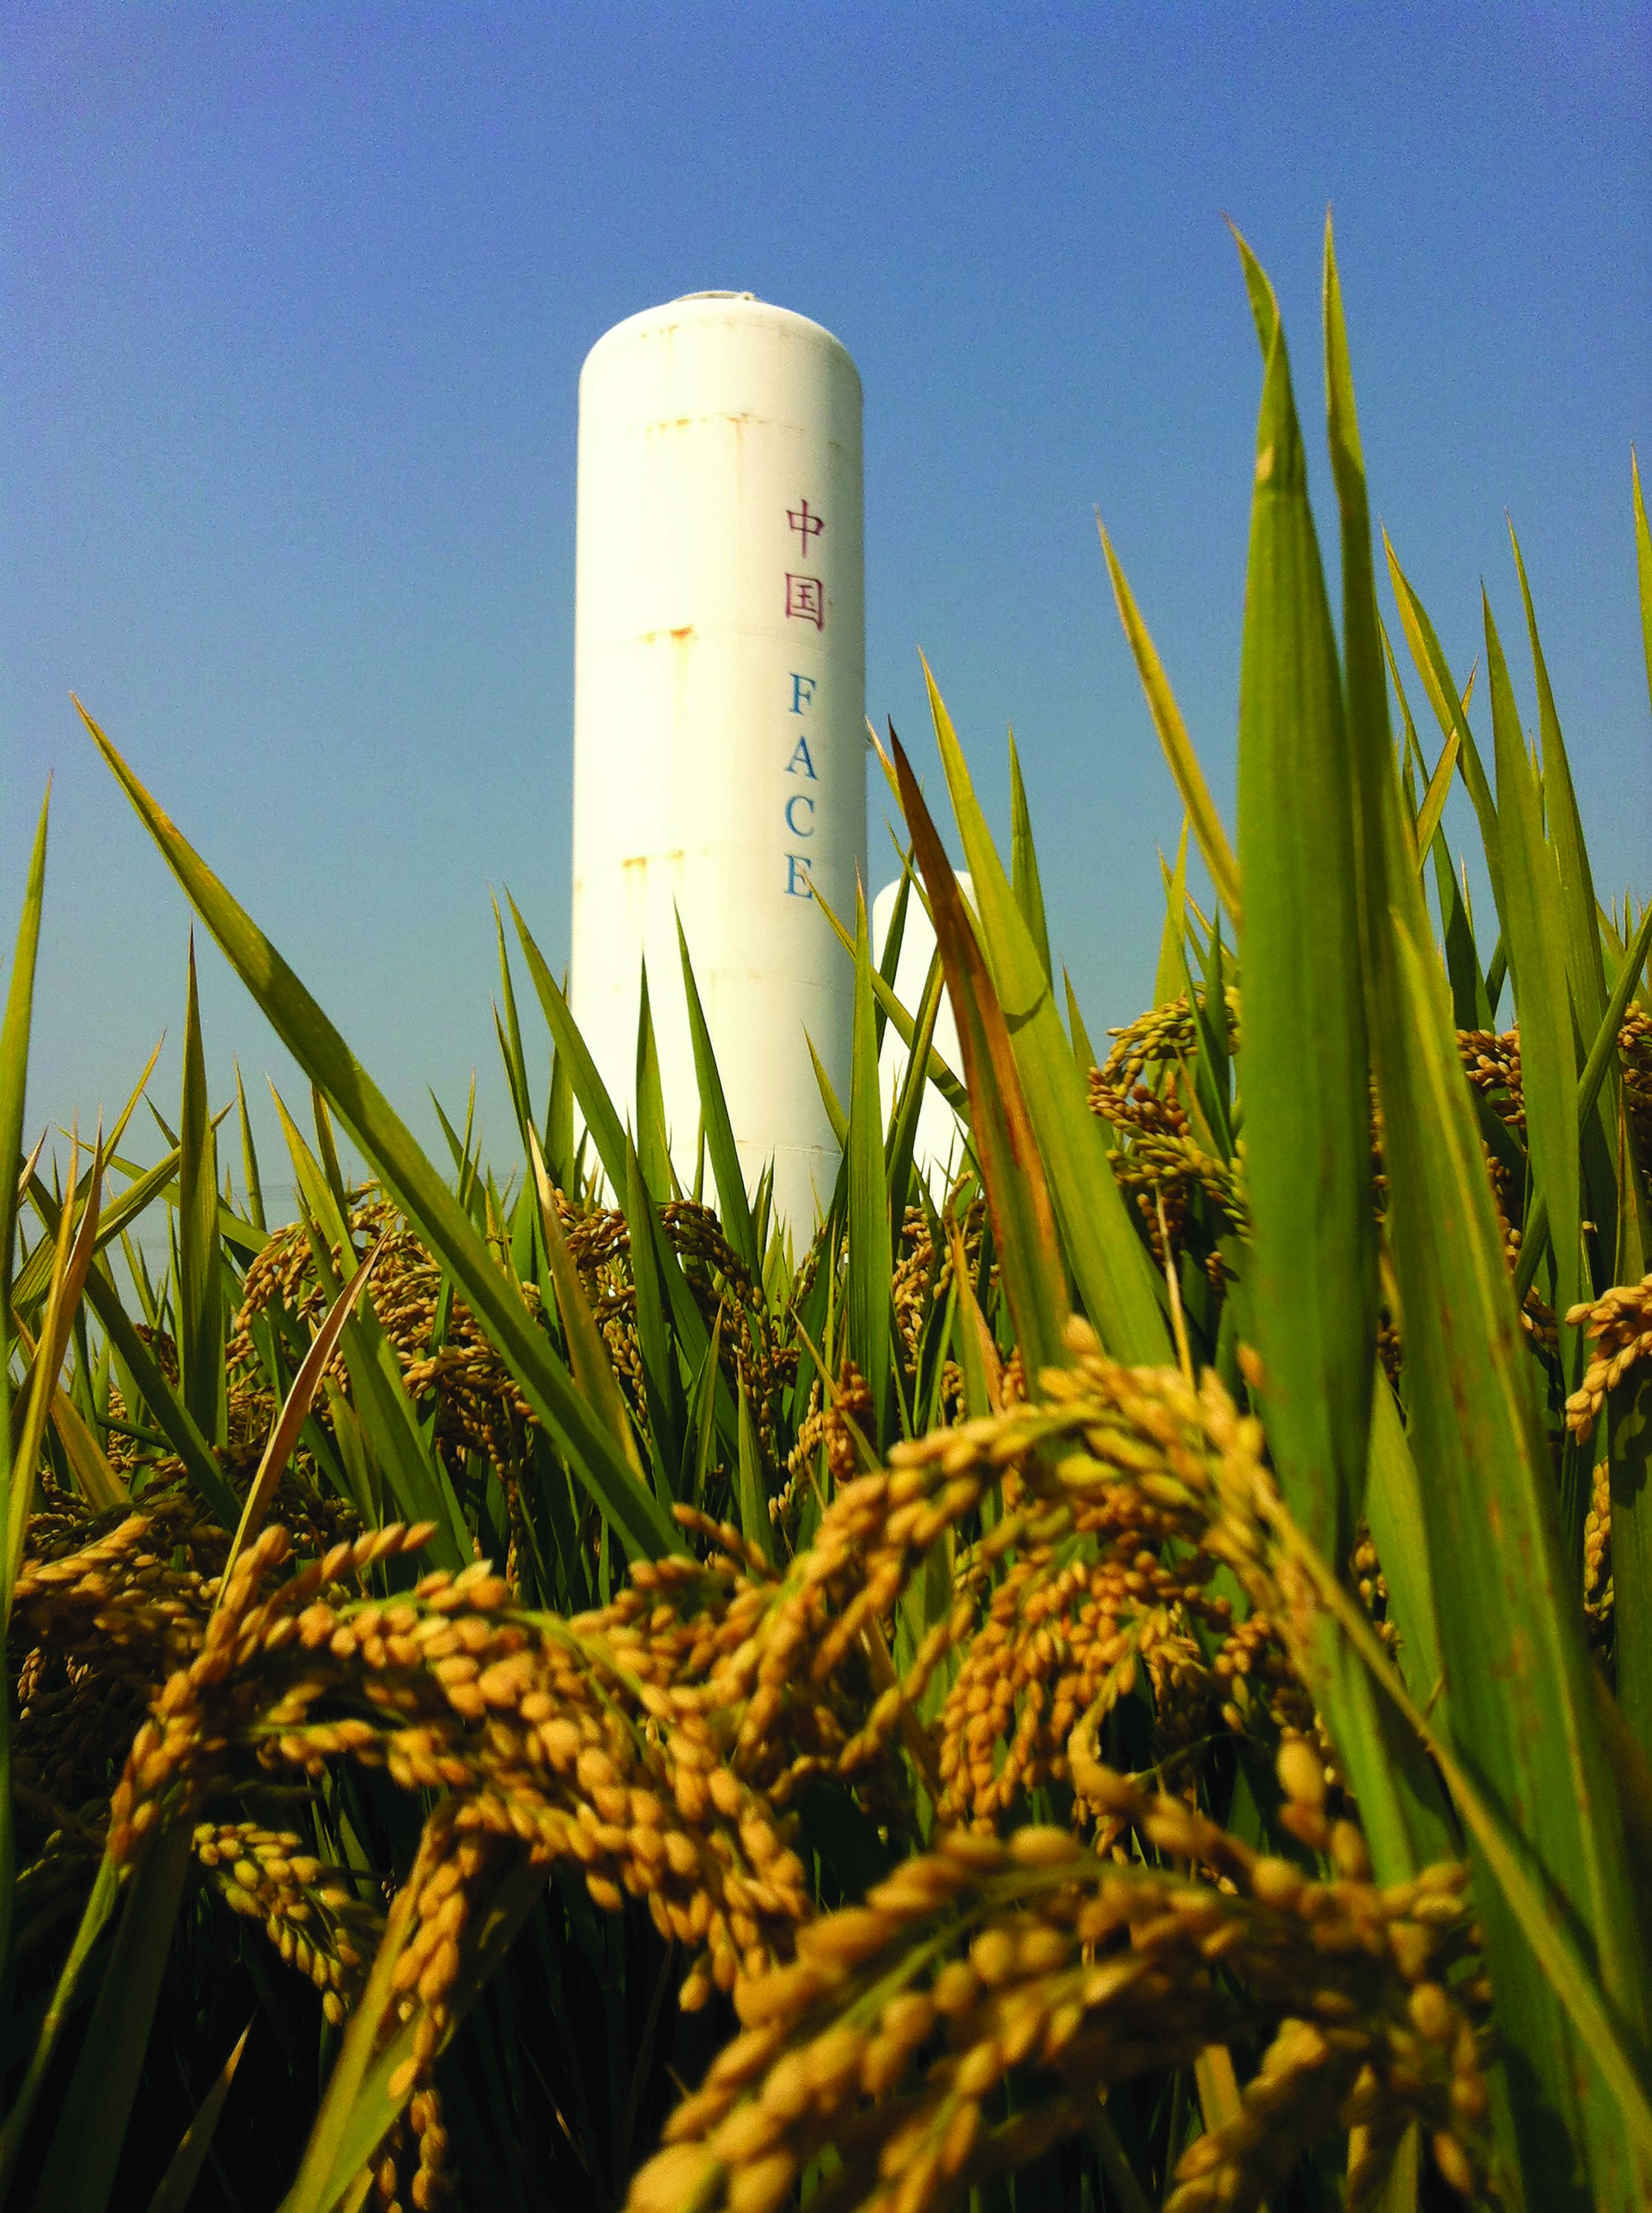 Enormous tanks of carbon dioxide distribute carbon dioxide gas to rice and wheat crops as part of a global warming research project by China's Nanjing University and UTEP Chair of the Department of Chemistry Jorge Gardea-Torresdey, Ph.D. Photo courtesy of Nanjing University